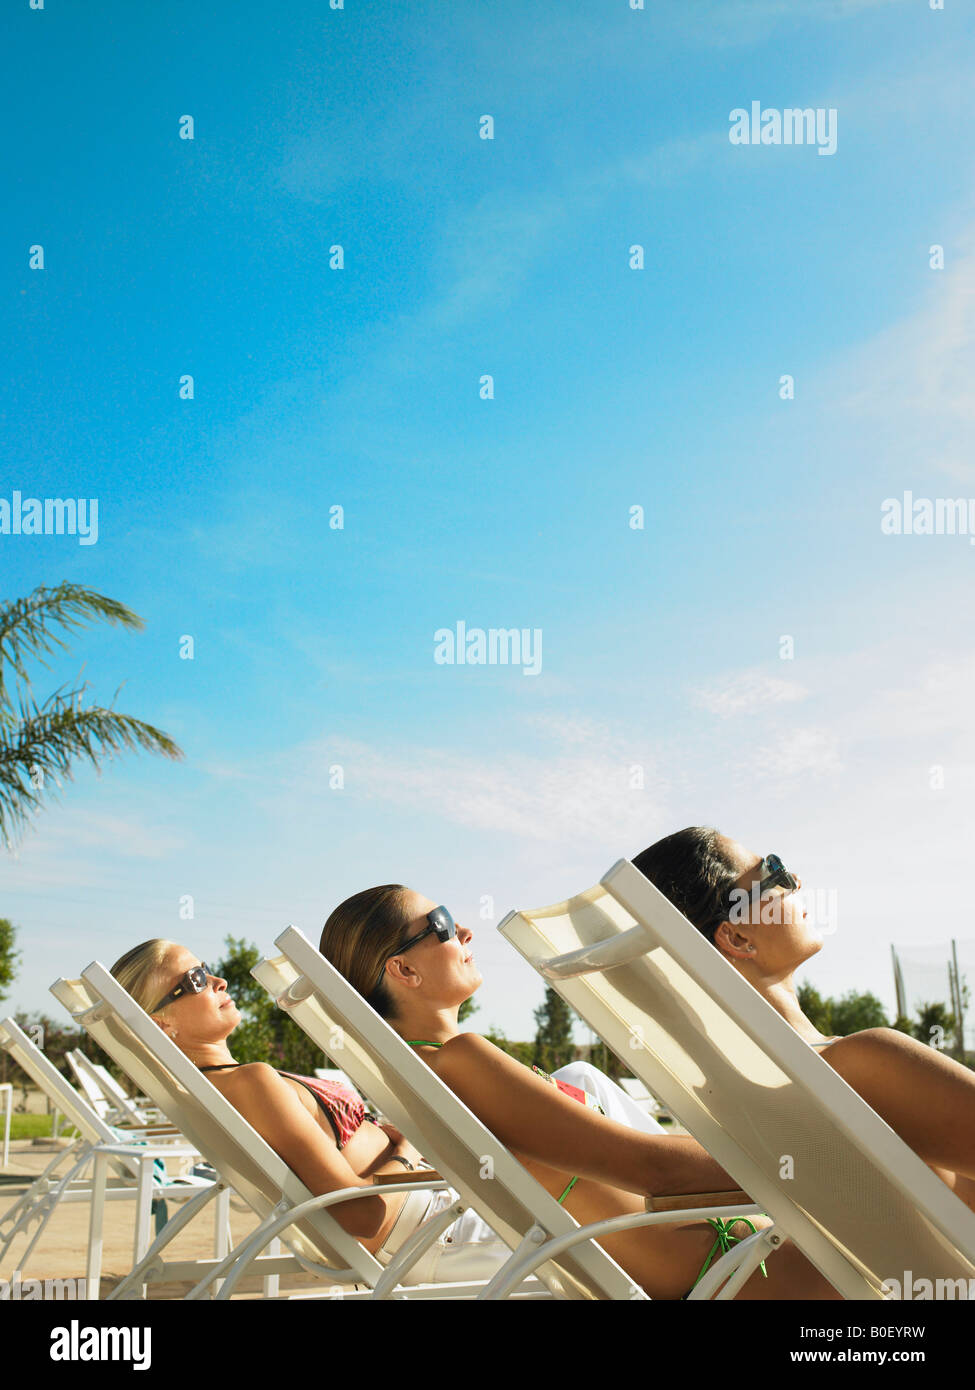 Three ladies relaxing in the sun - Stock Image